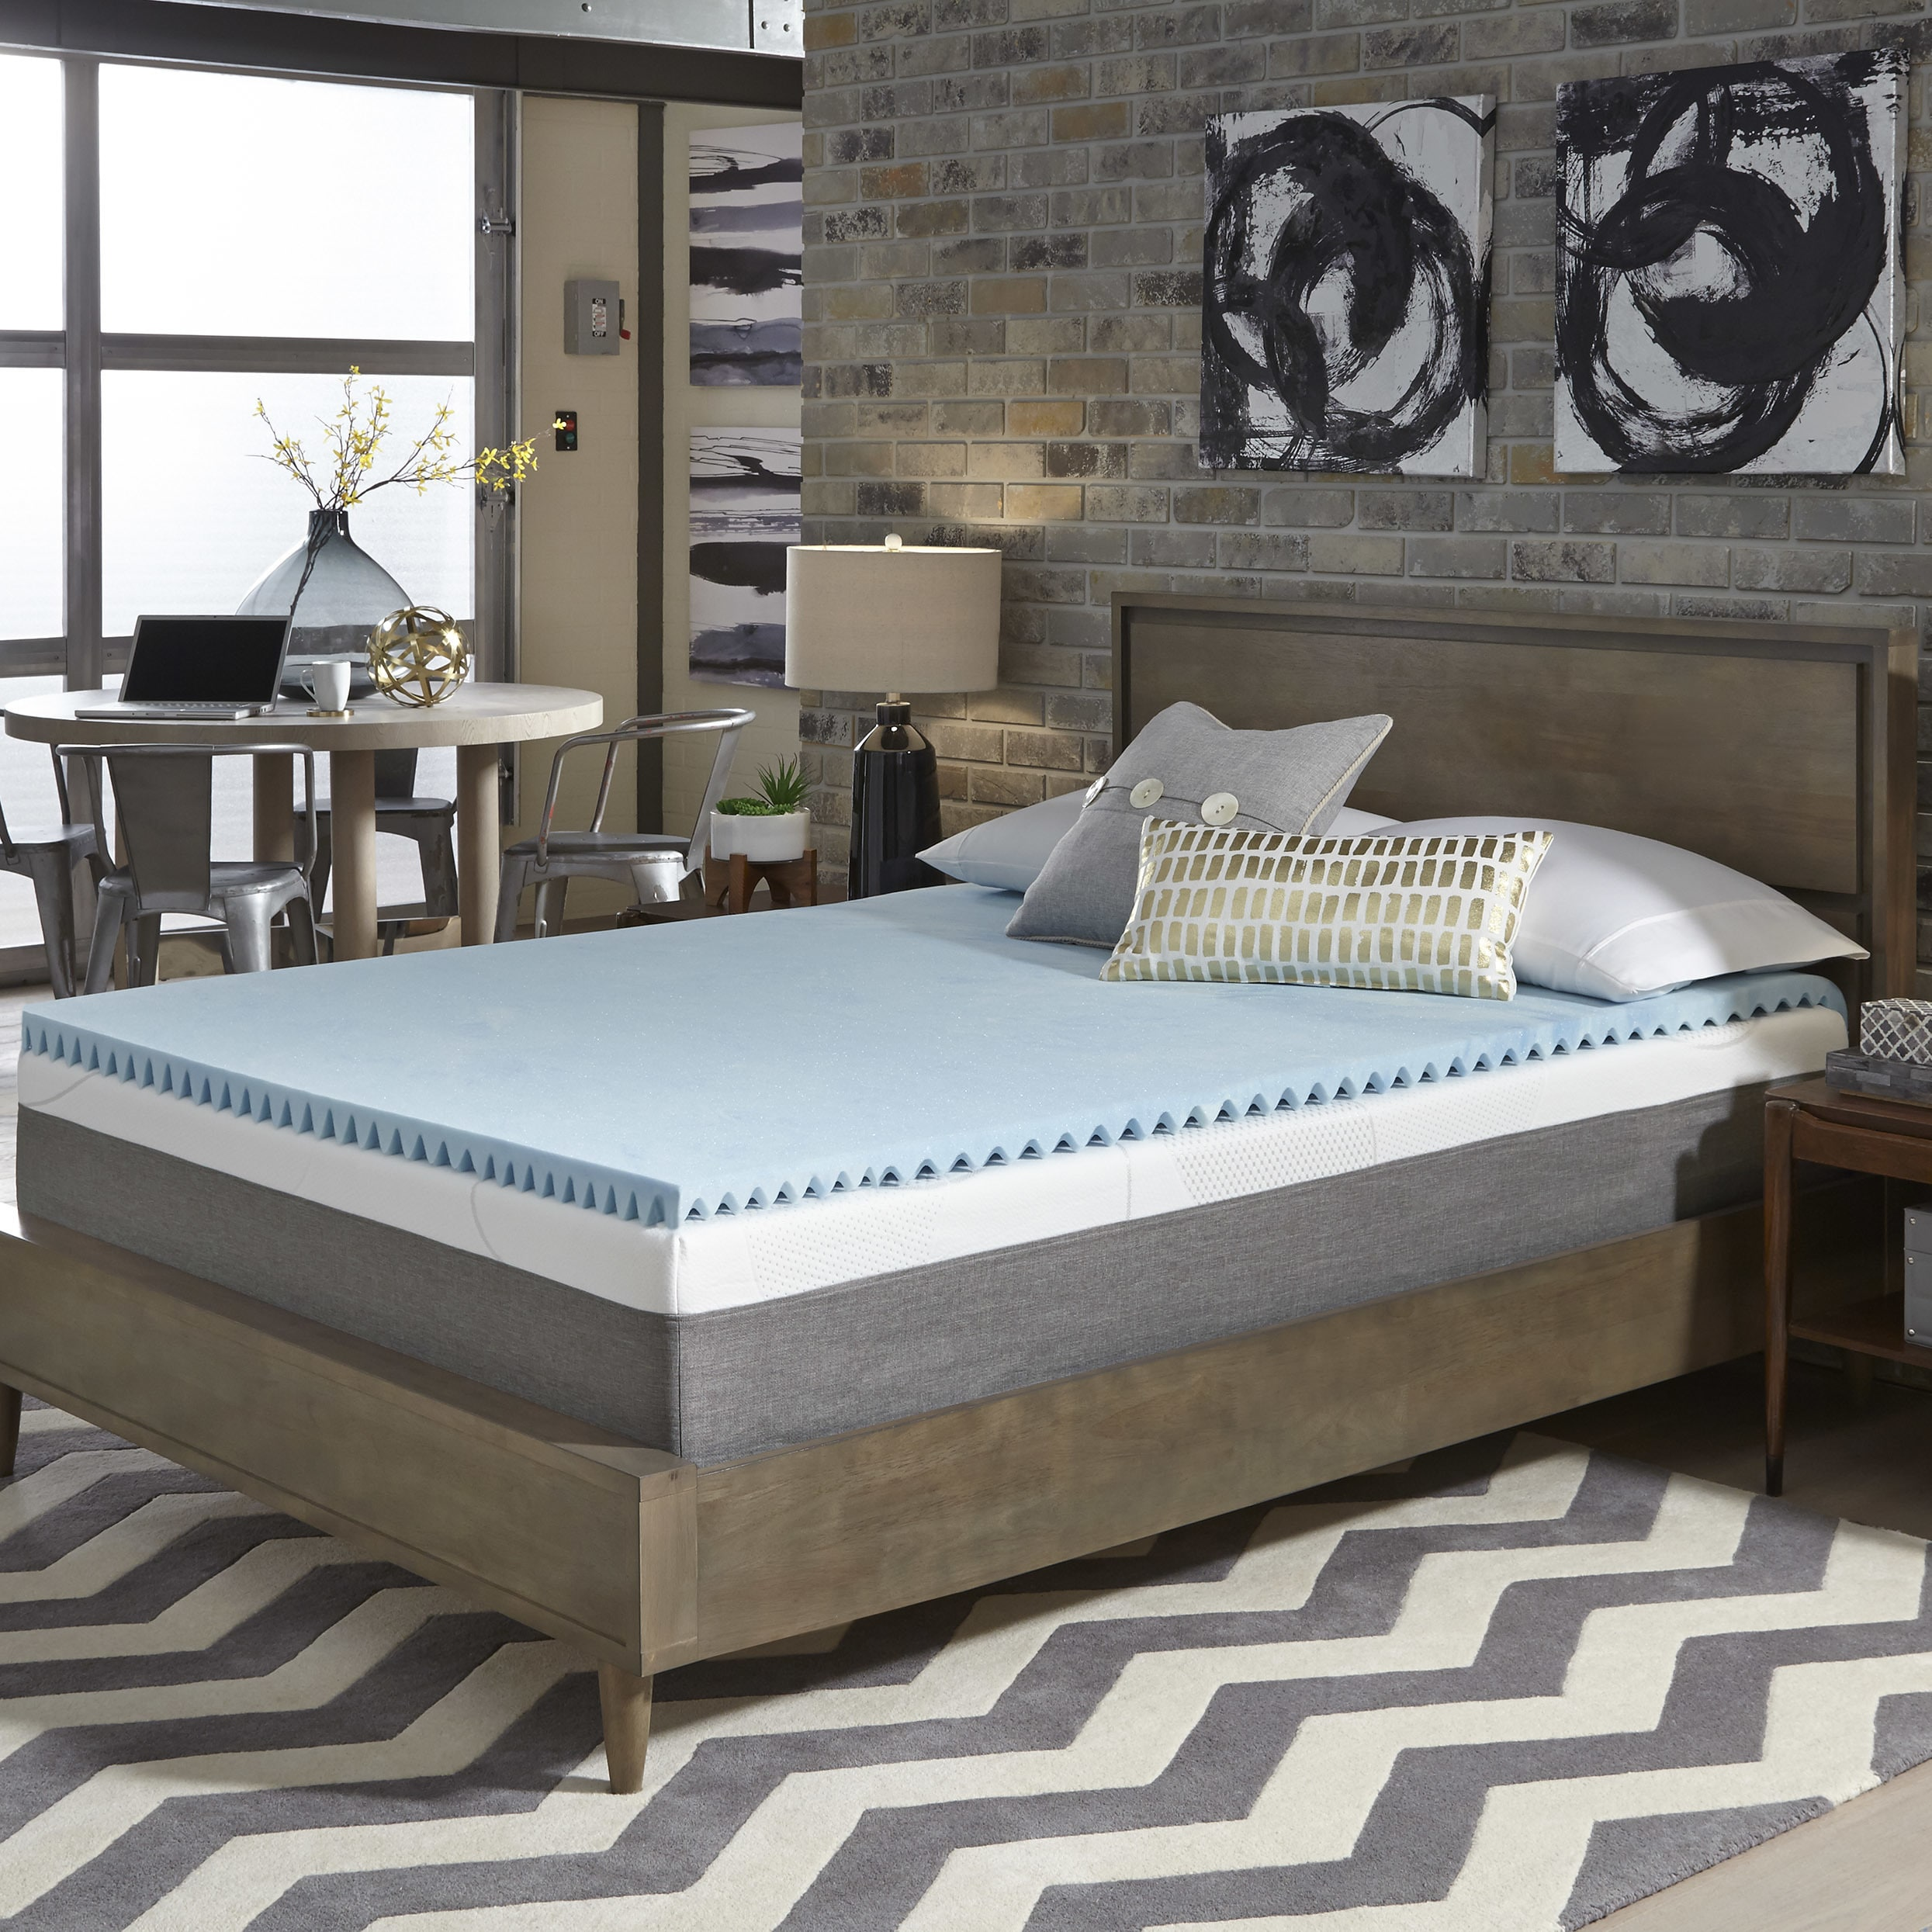 xl s breeze twin sleeping tempur luxury platform ideas contour for plus comfort foam comfortable price lift with and elite furniture temper comforter modern tips ergo mattresses much pedic how adjustable base prices cooling bedroom kane set bed using frame memory mattress tempurpedic